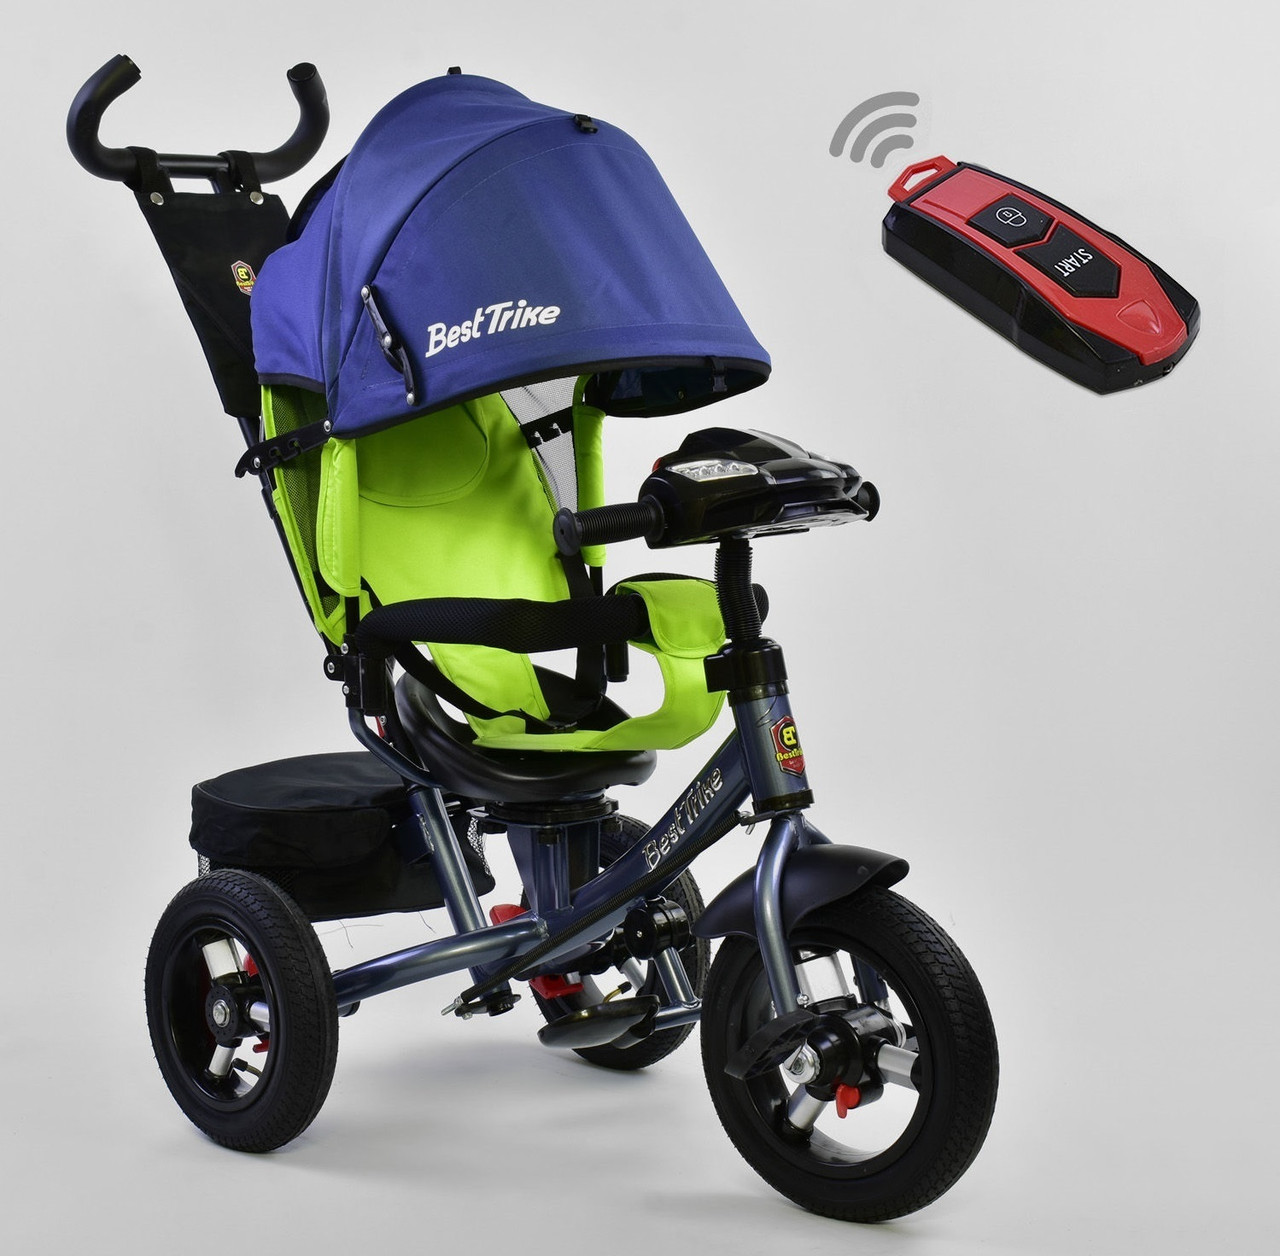 Best Trike Велосипед Best Trike 7700 B 7640 New Blue / Lime Green (7700 BN)